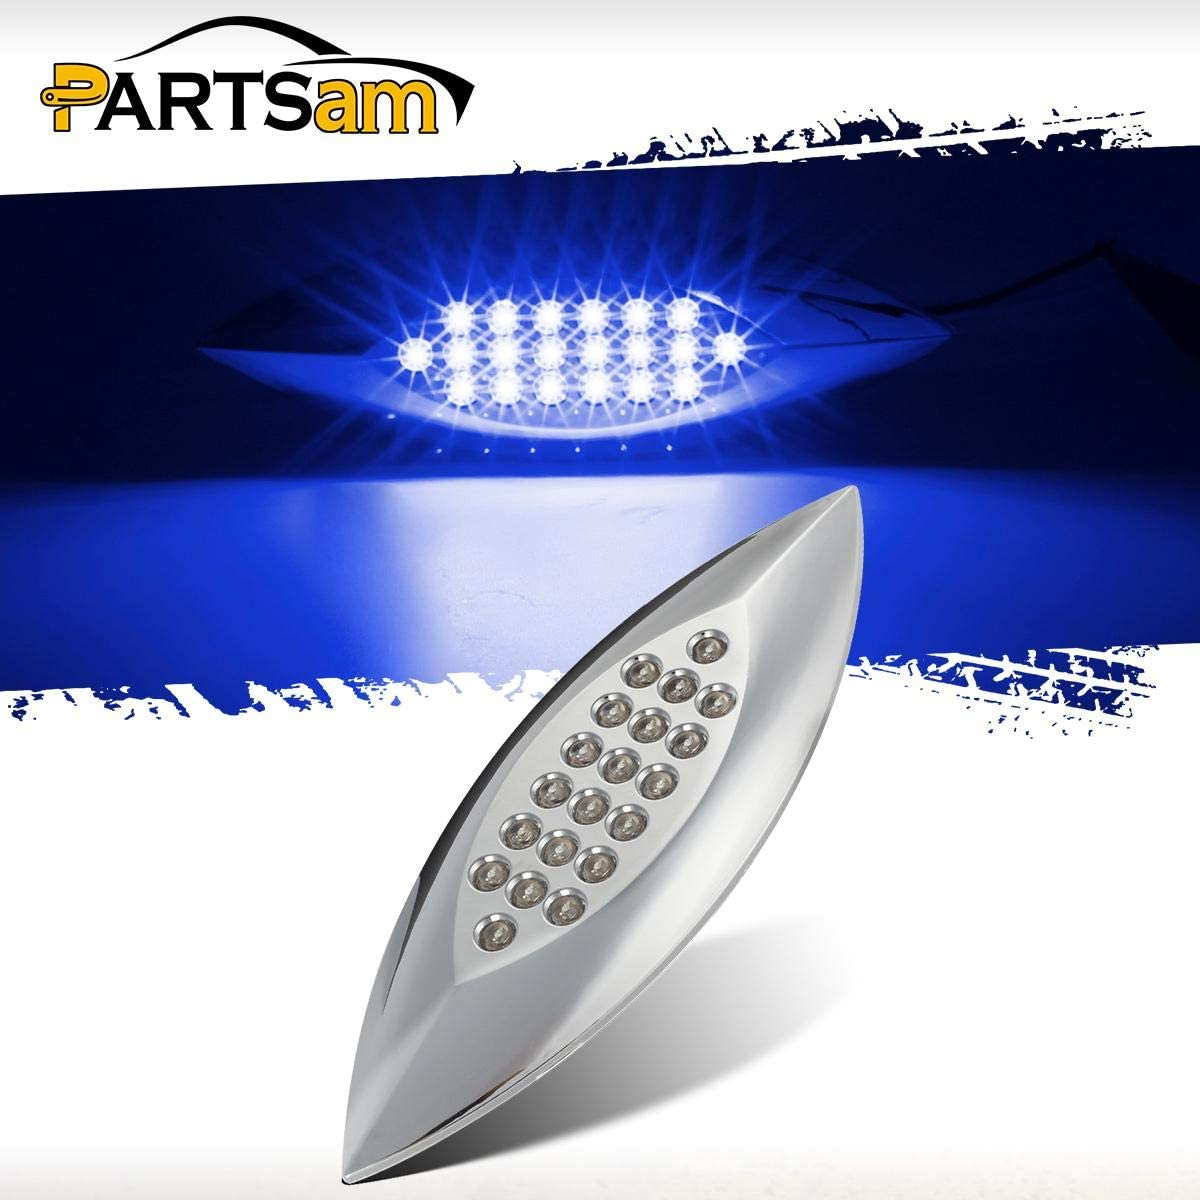 Partsam 6-3//5 Inch Flat-line Oval Stealth Blue Led Side Marker Lights Auxiliary Licence Plate Lights 20 Diodes Sealed Dual Mode Flush Mount Waterproof Led Front Fender Marker Lights Panel